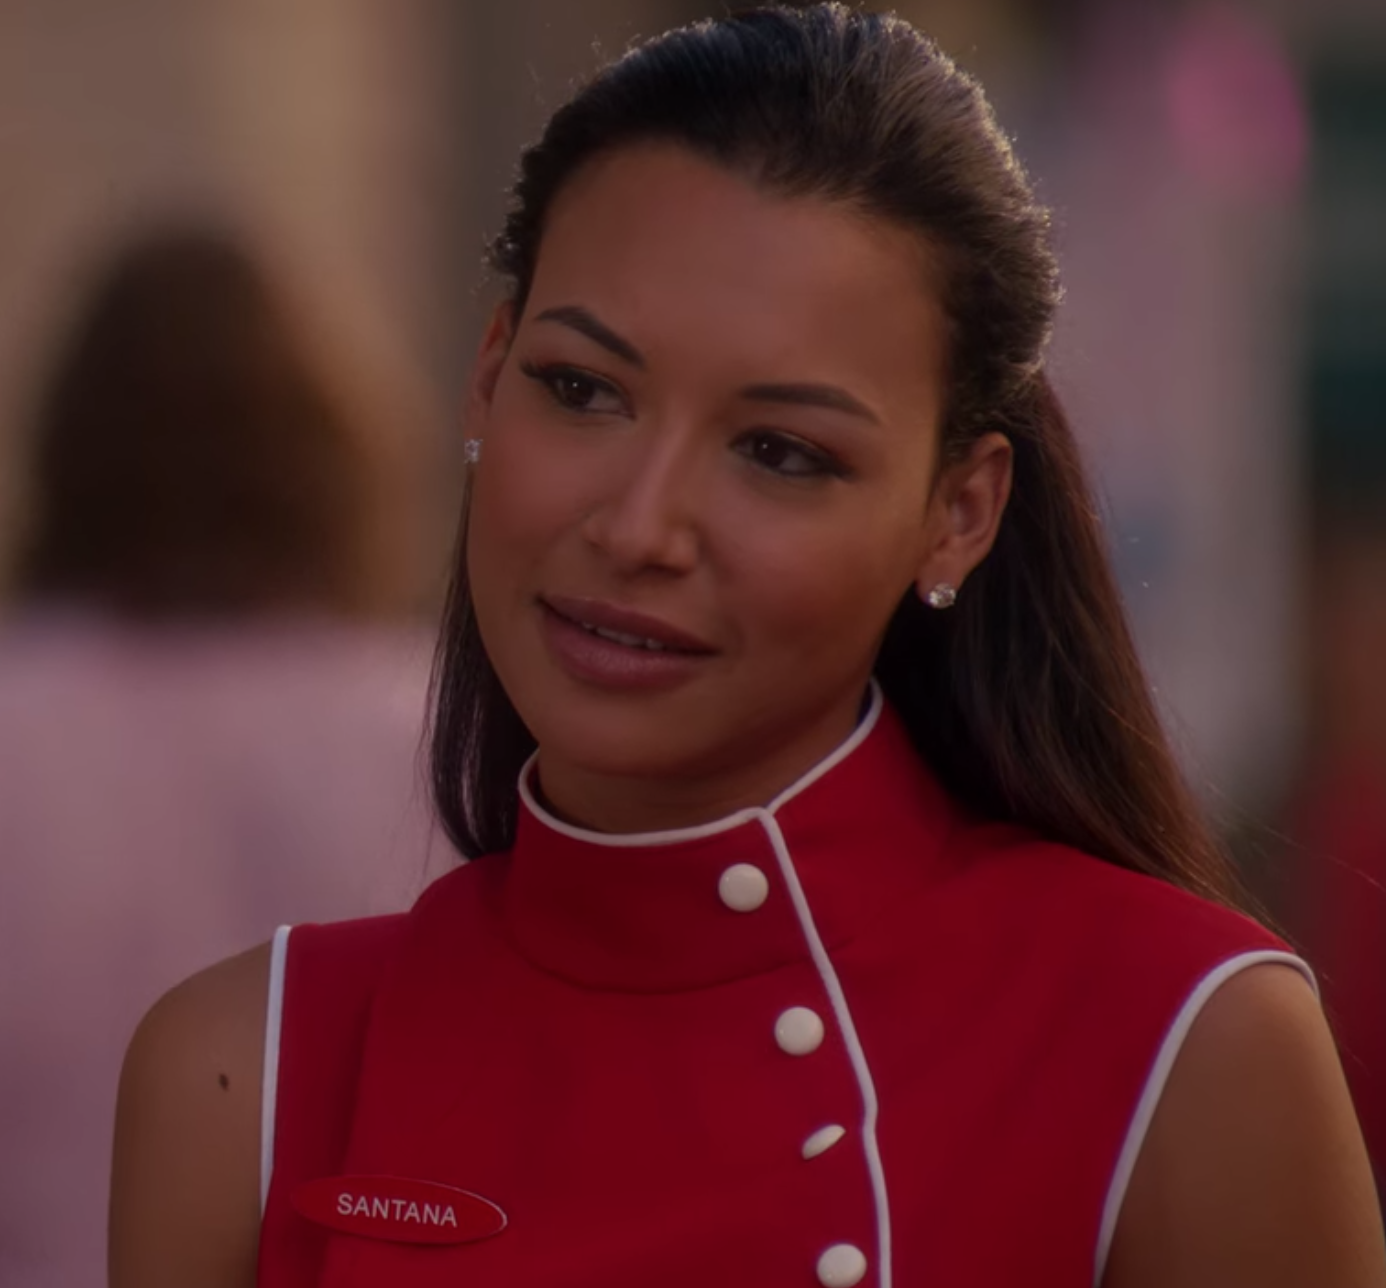 Santana Lopez stands on a street in NYC wearing her red turtleneck sleeveless waitress uniform.